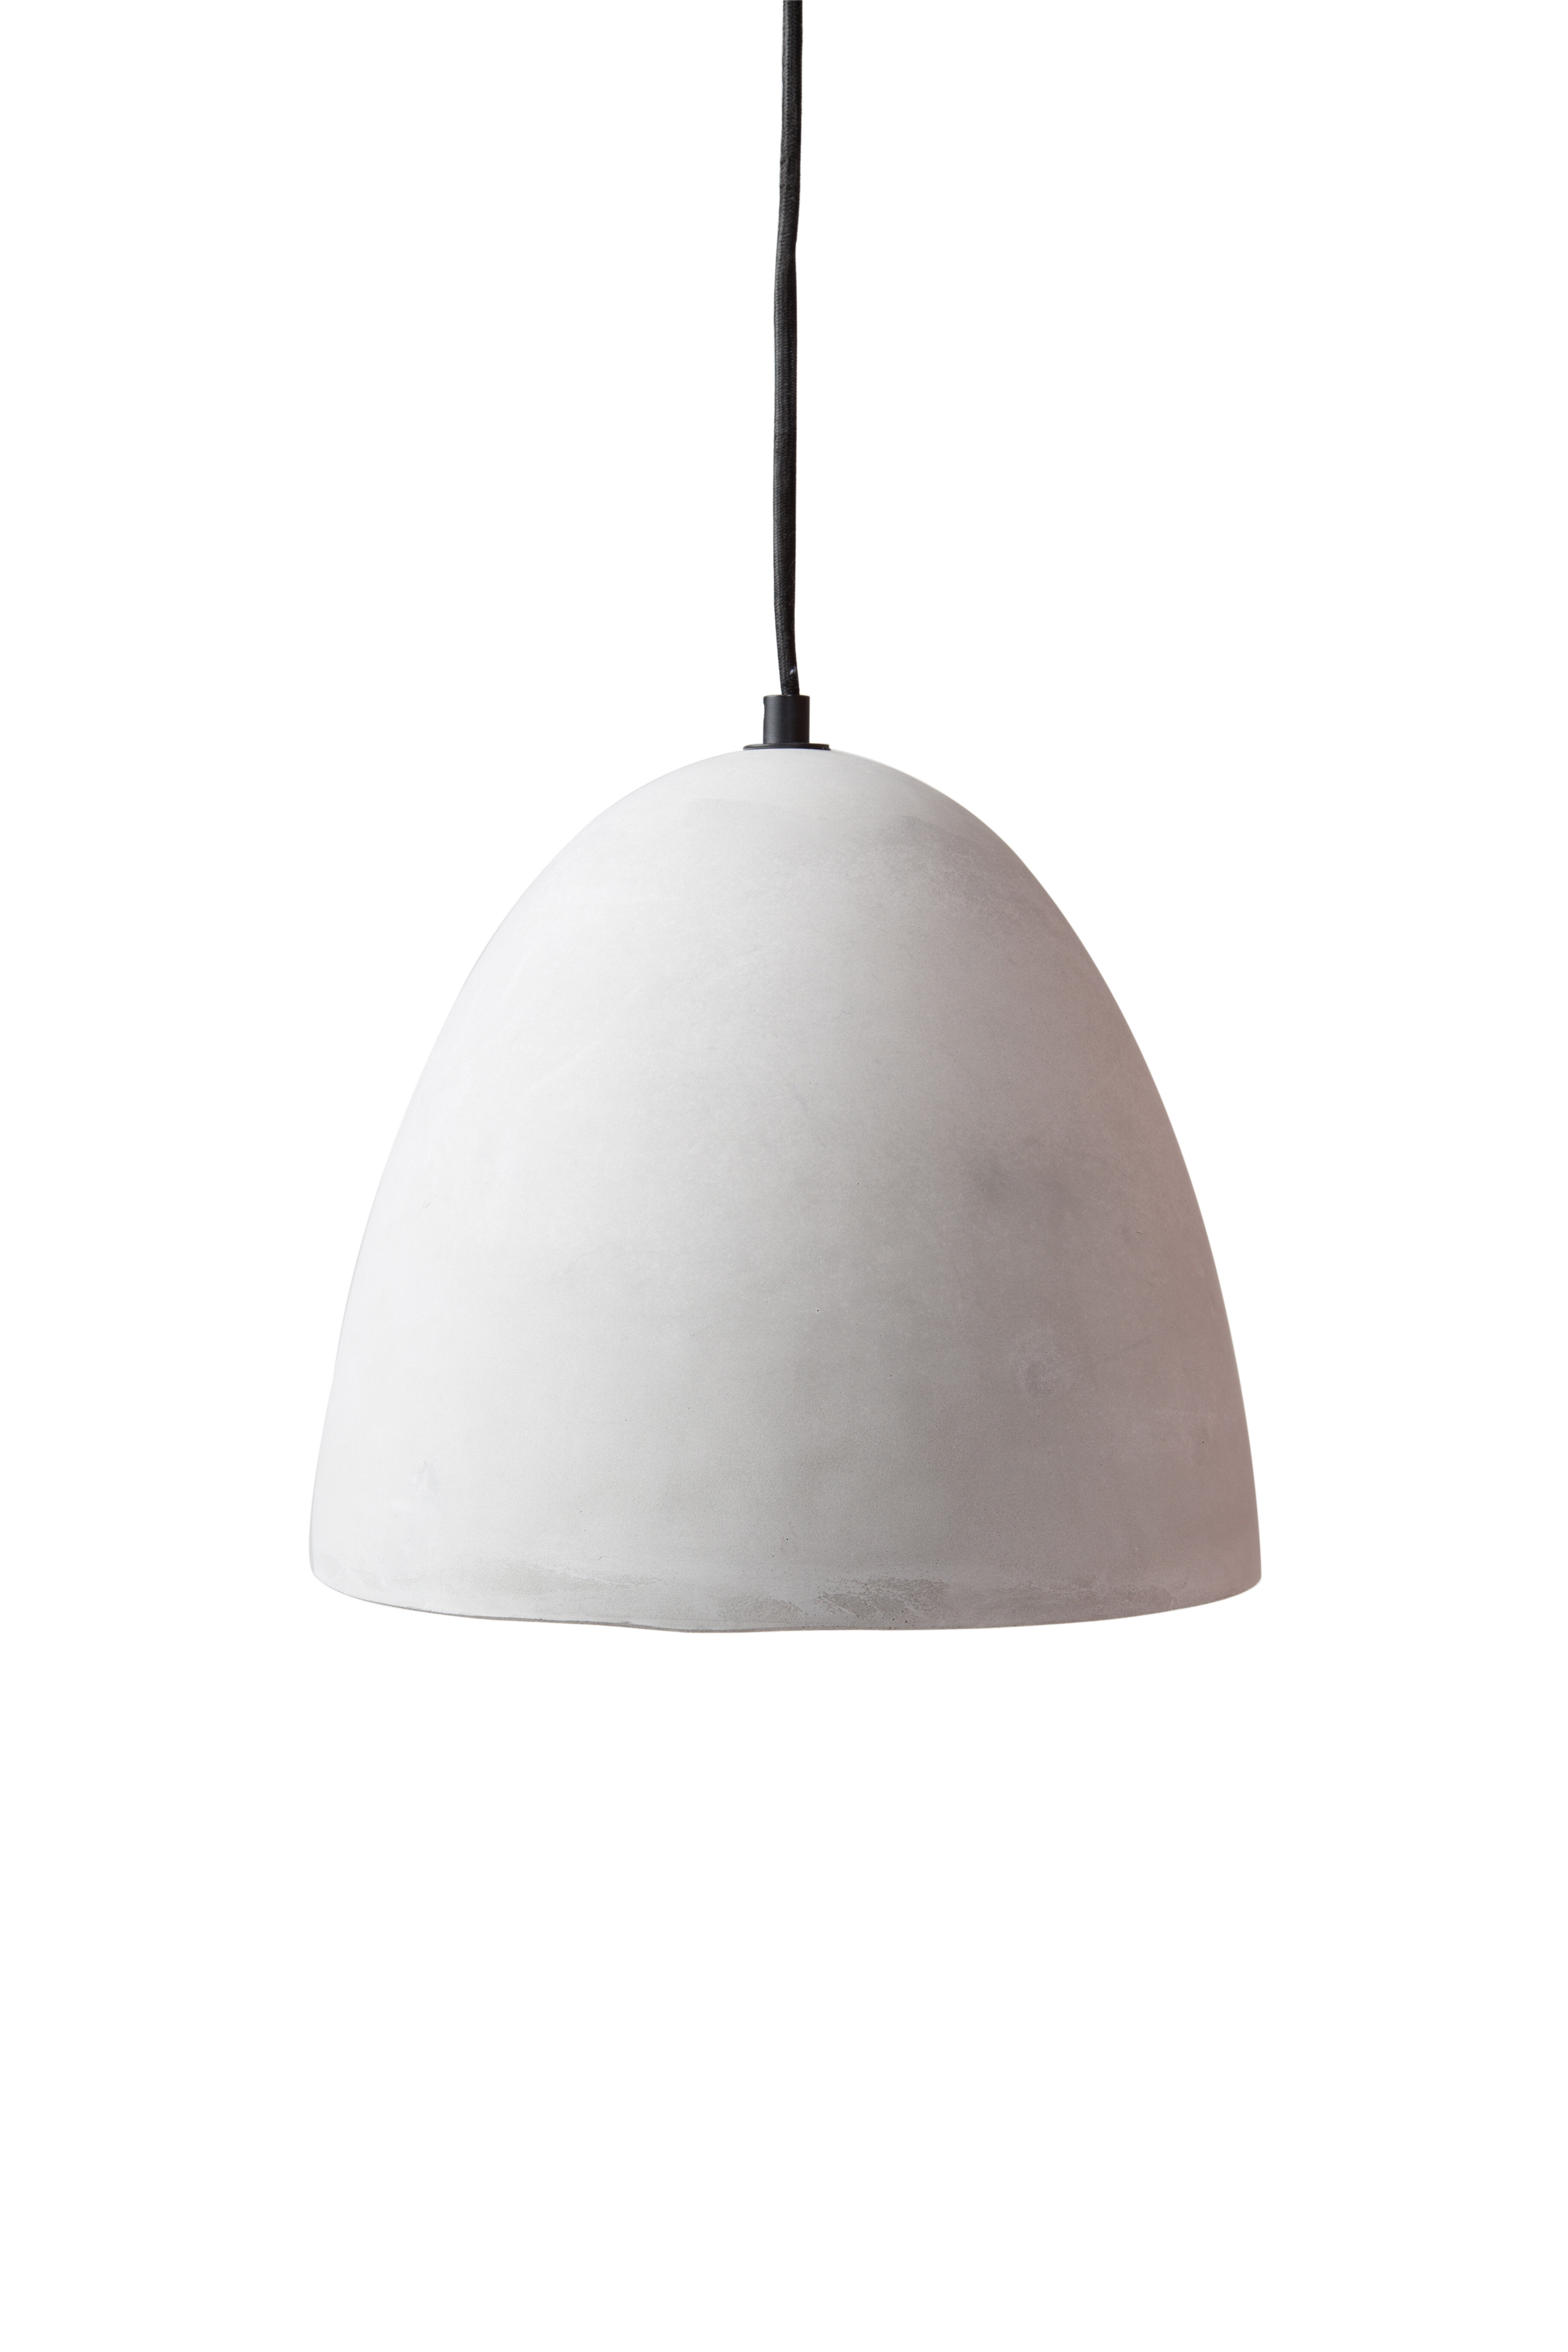 lamp et product contemporary globus prod orbi urbi dimmable concrete pendant